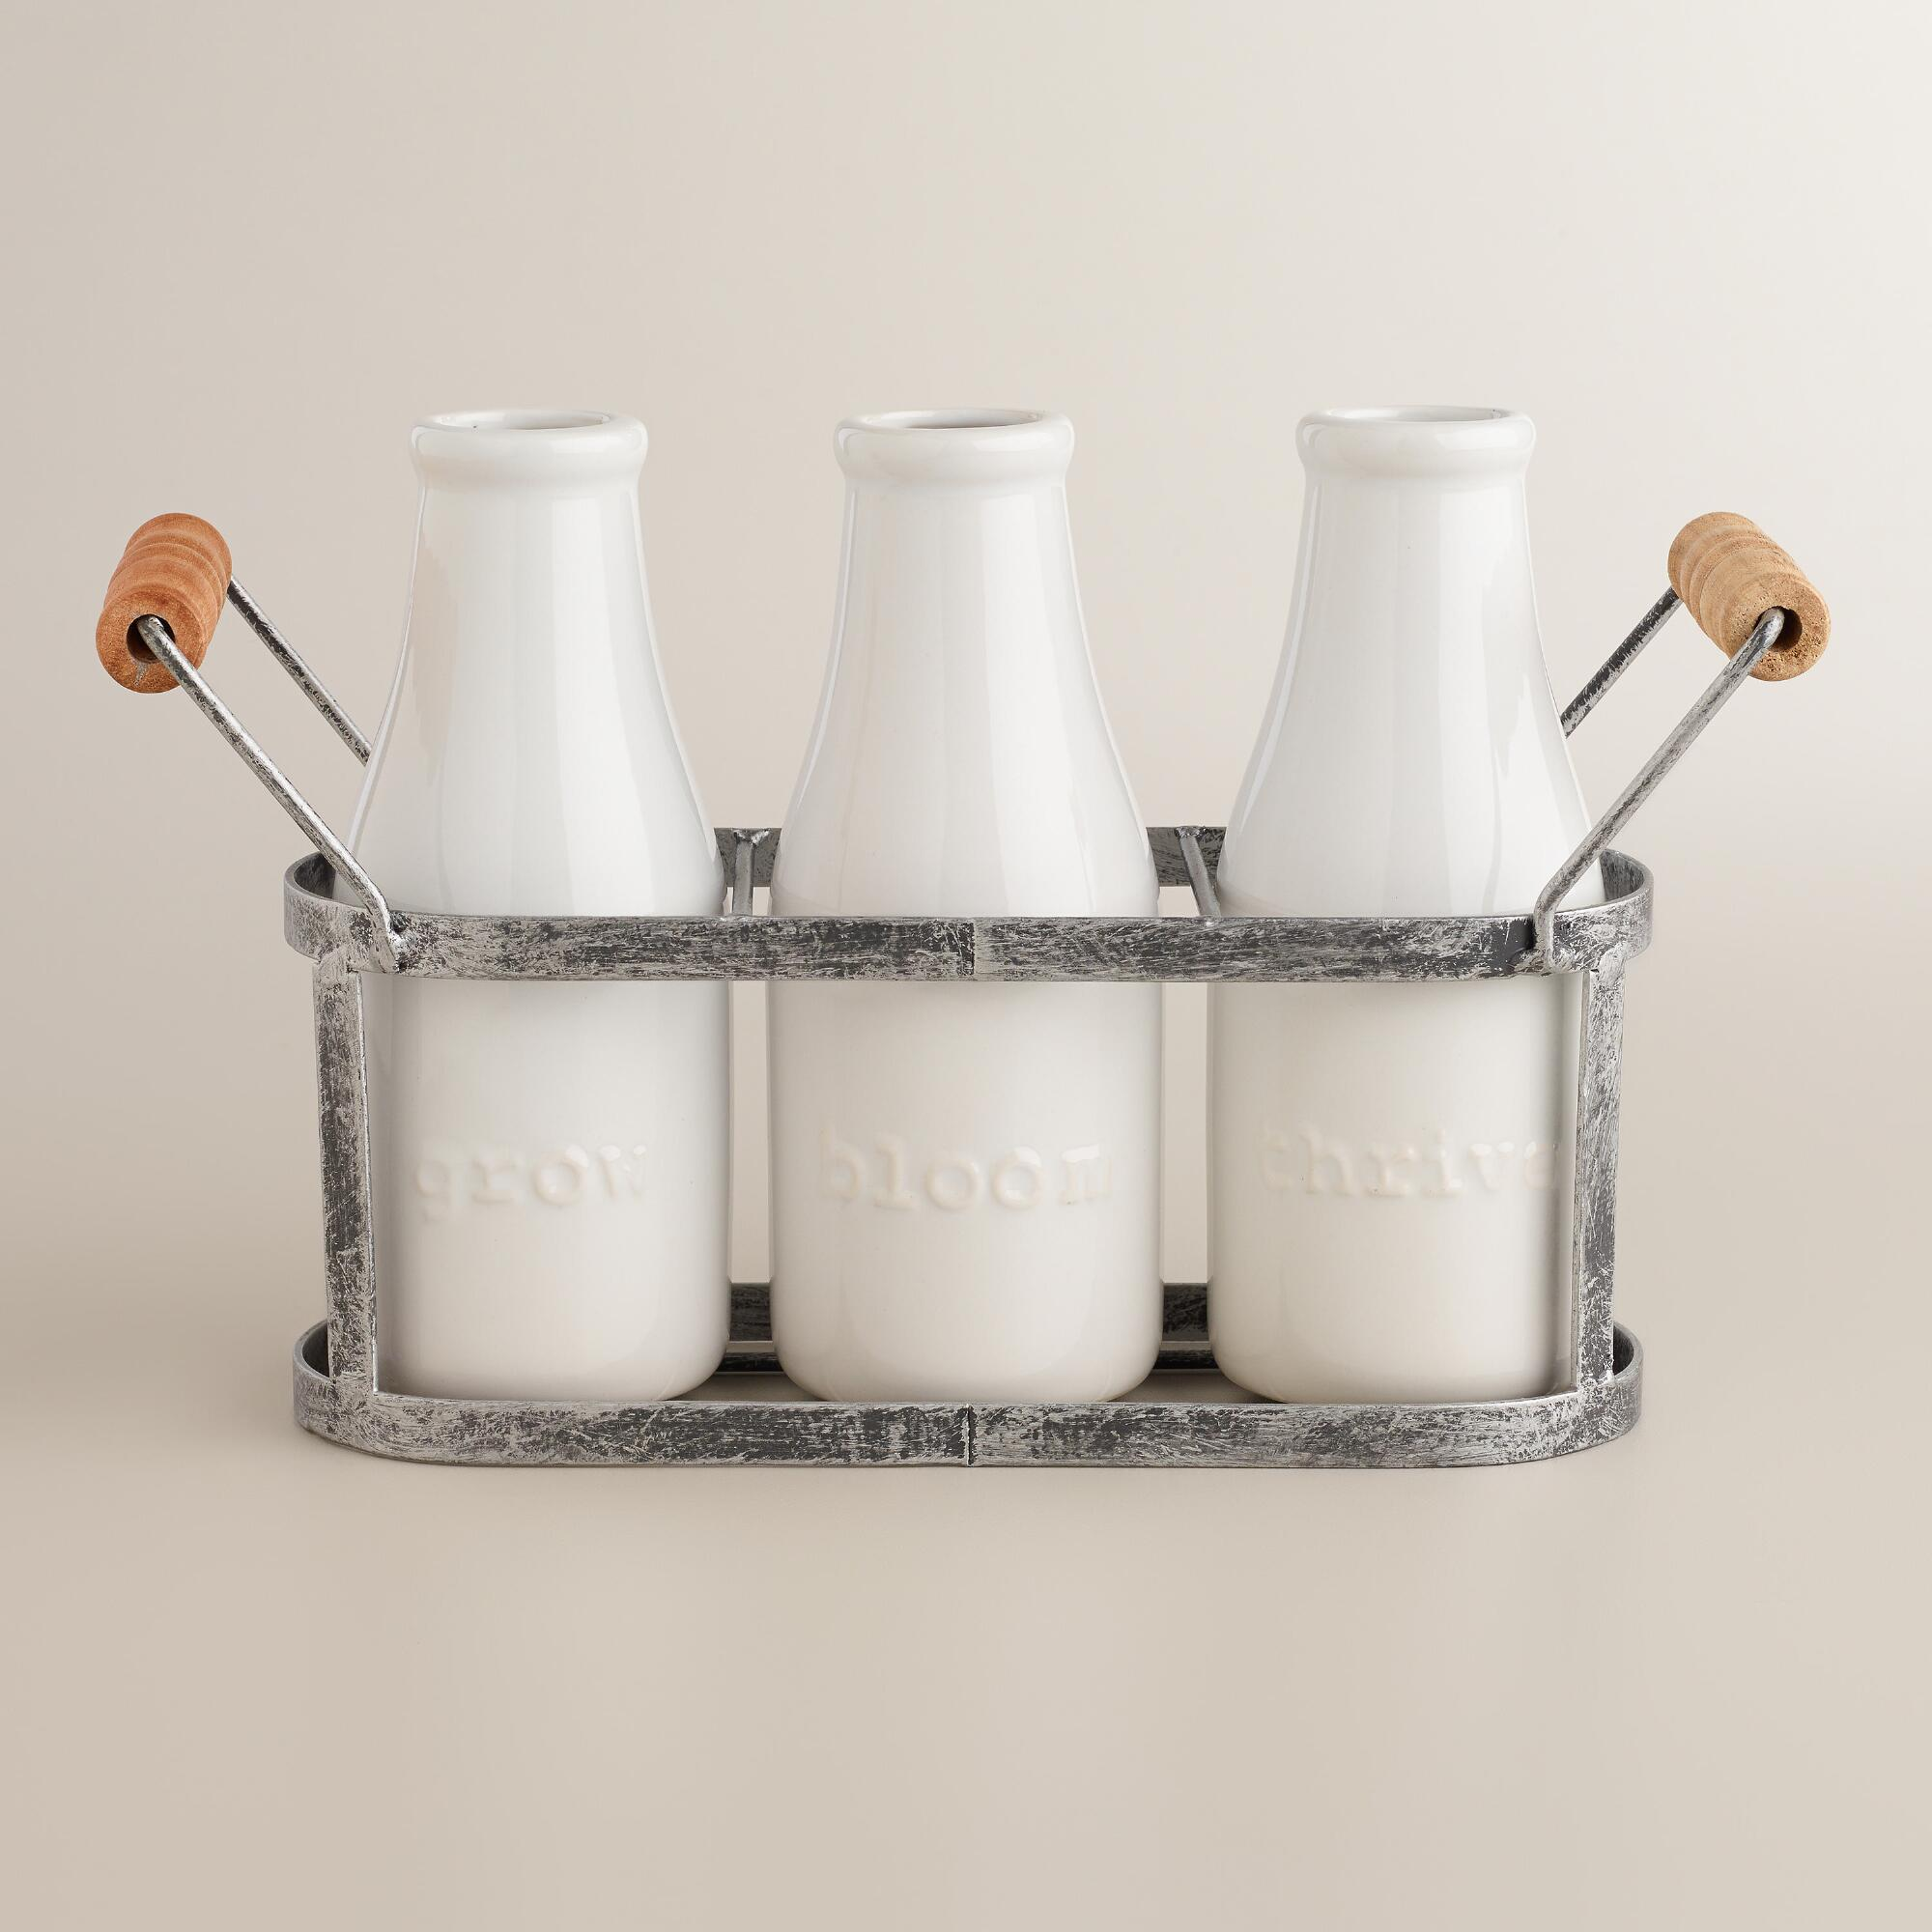 Bloom thrive and grow milk bottle vases with holder world market reviewsmspy